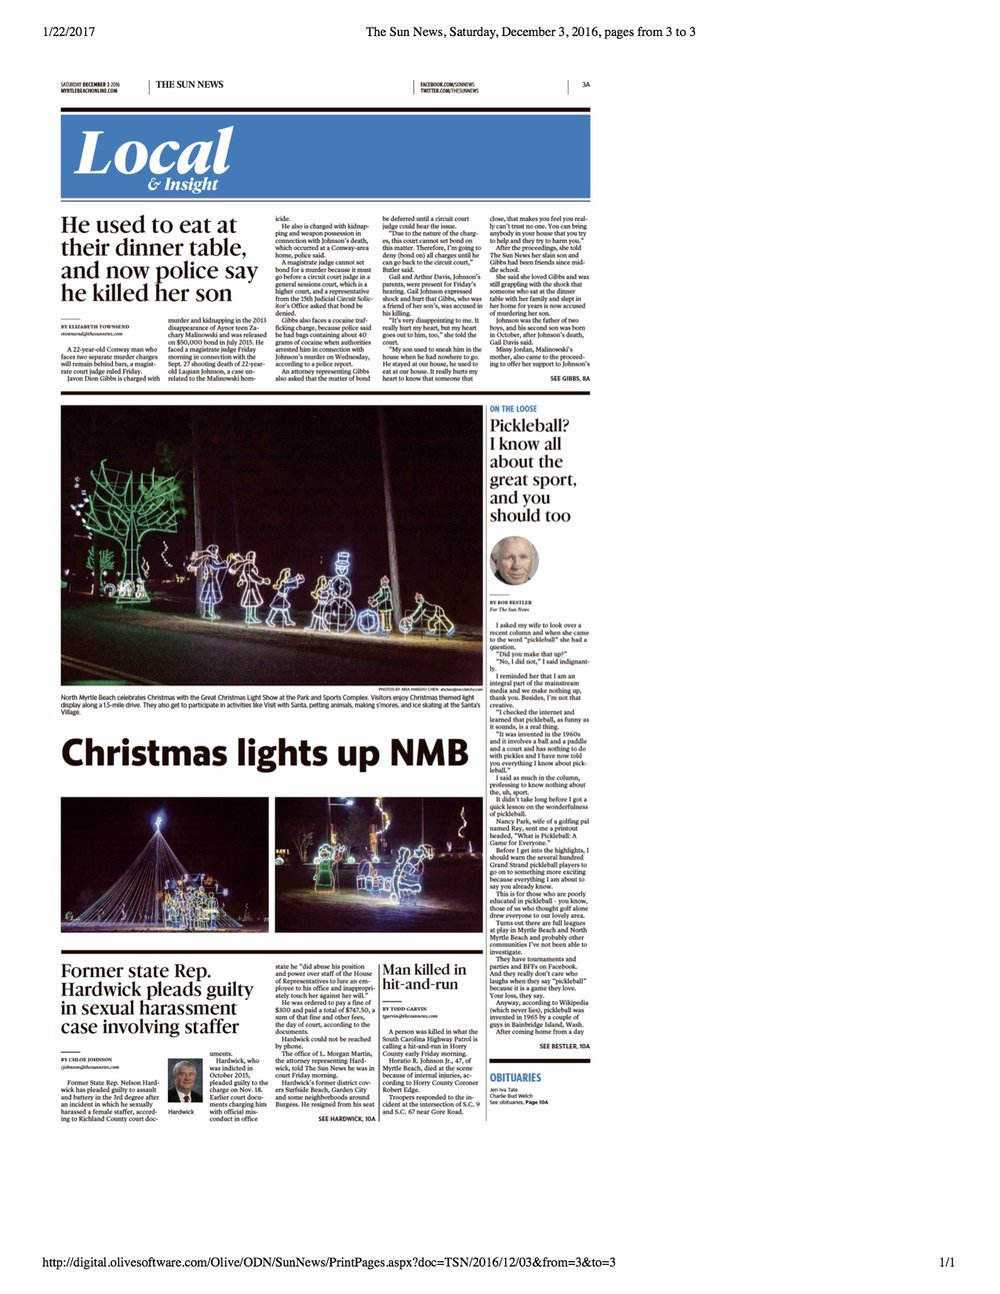 The Sun News, Saturday, December 3, 2016, pages from 3 to 3.jpg